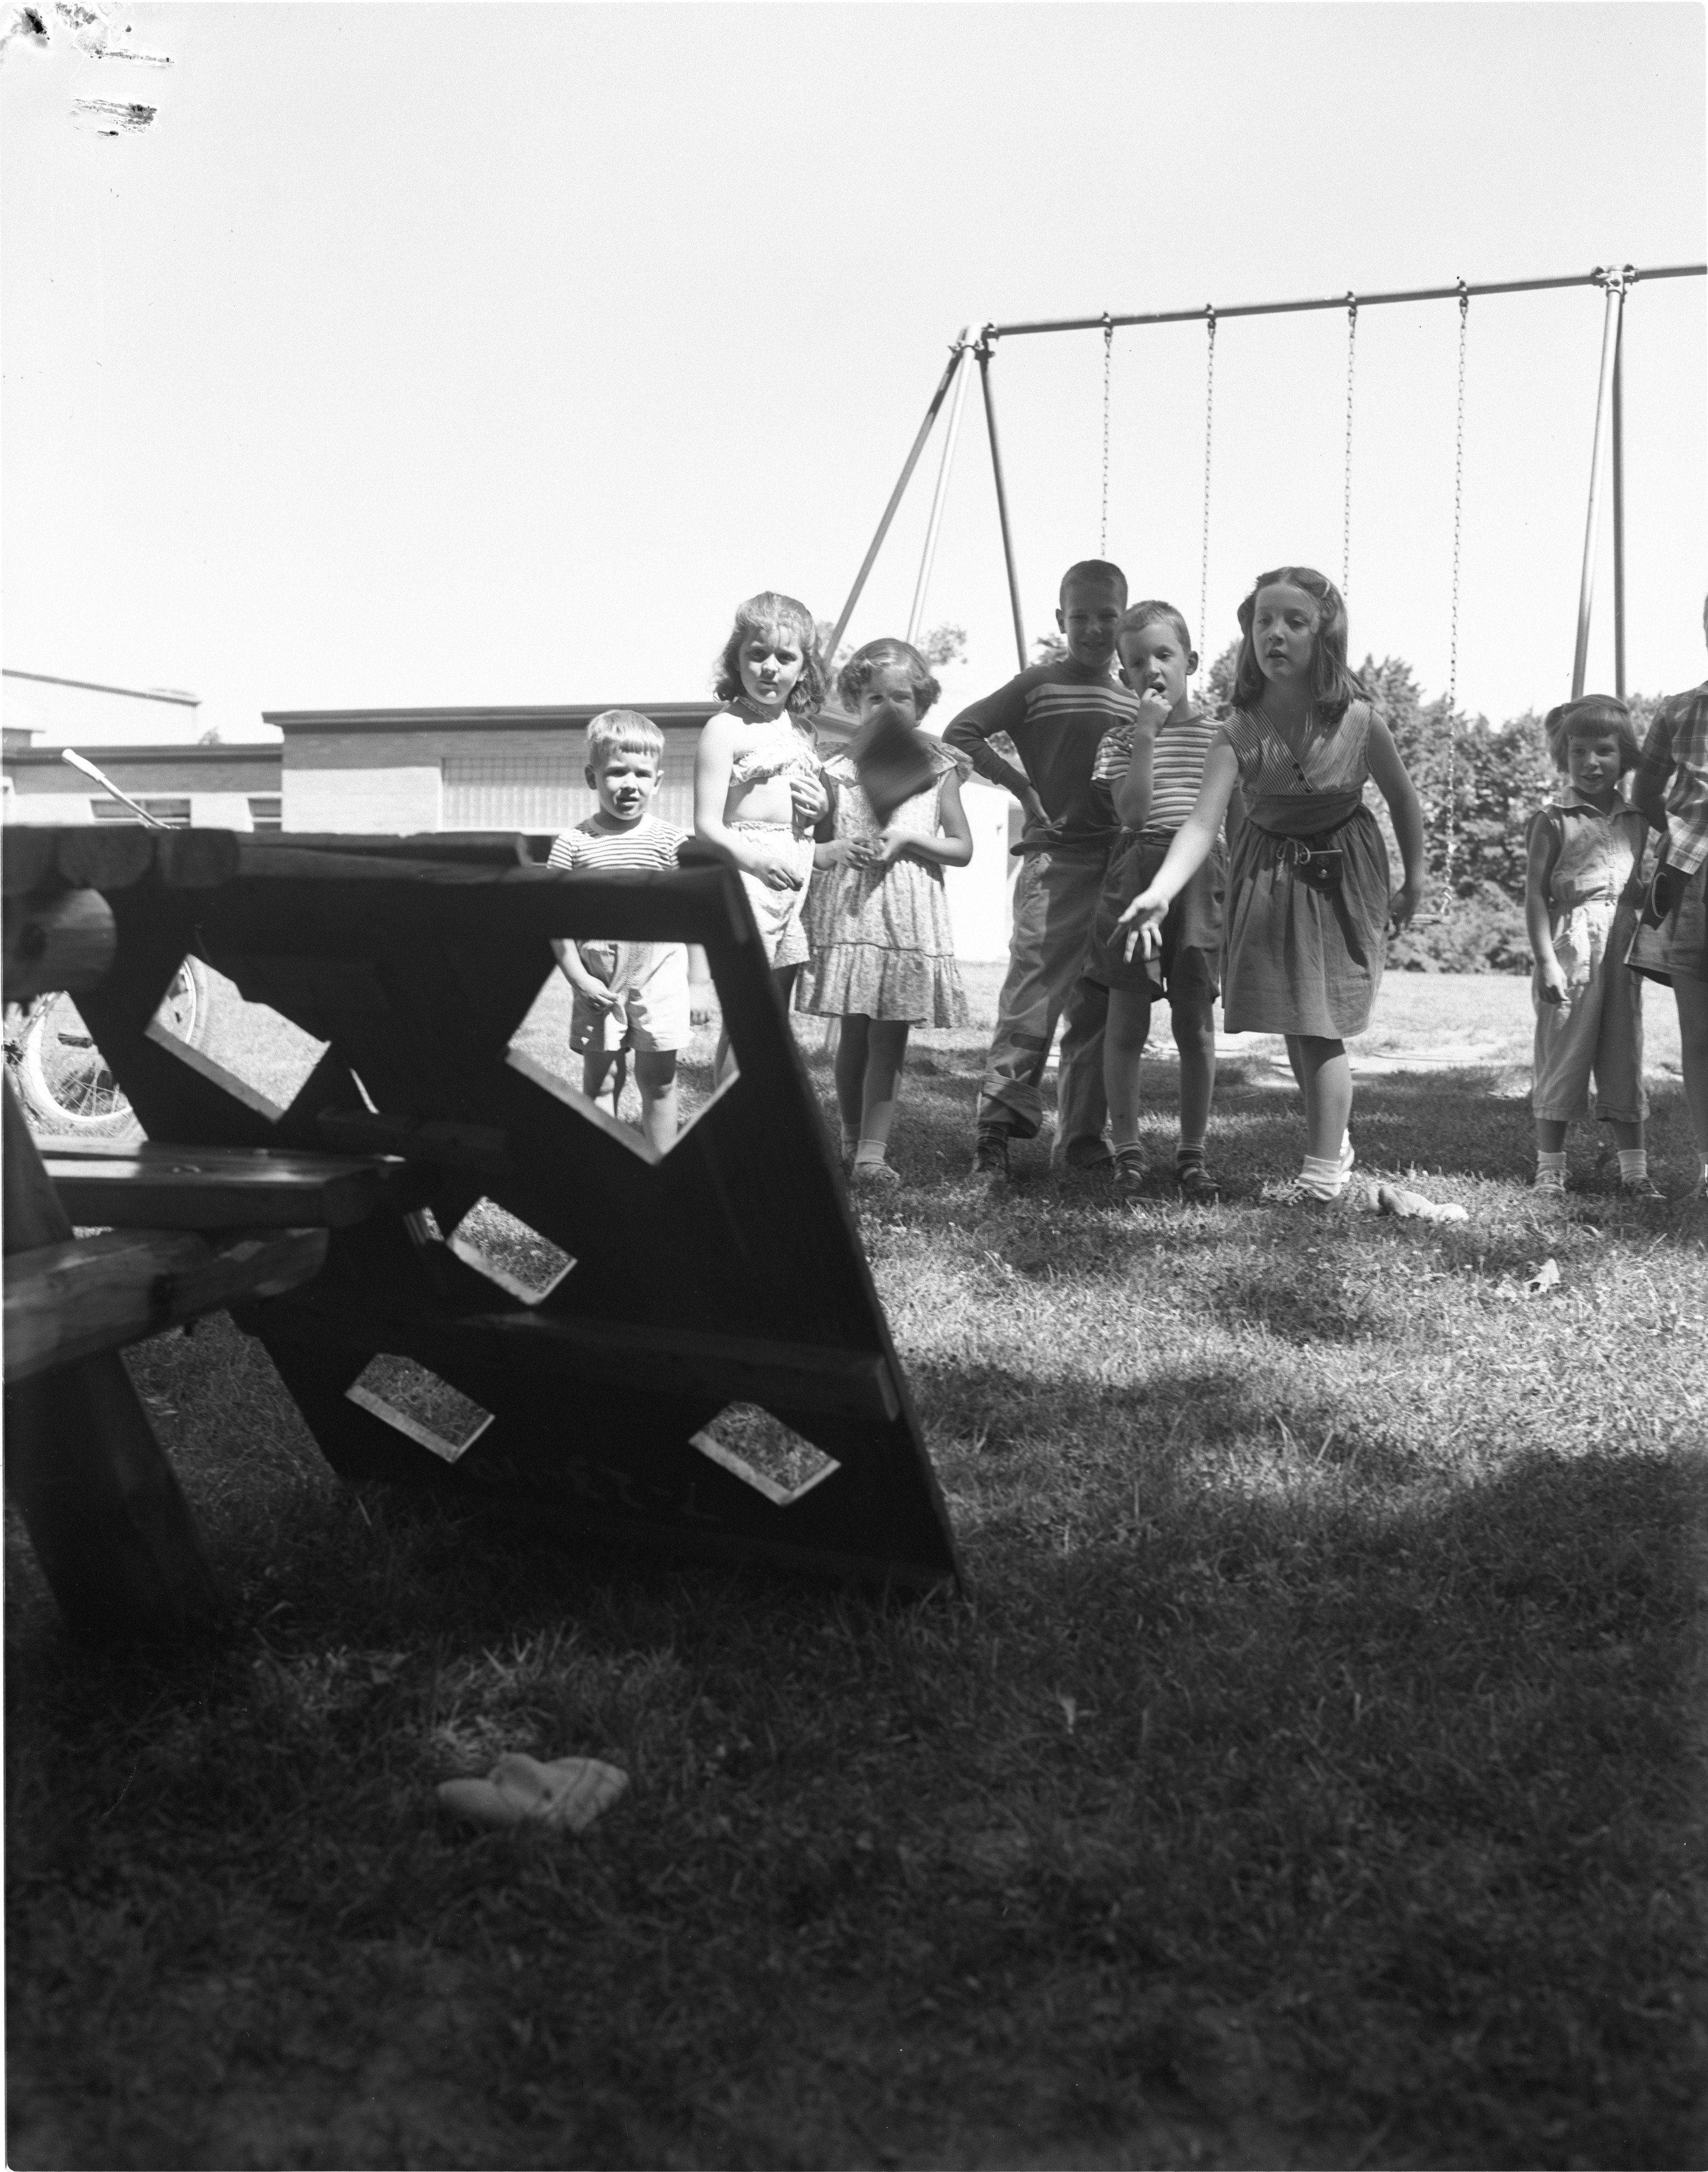 Bean Bag Throwing Contest At Eberwhite School Playground, July 1954 image